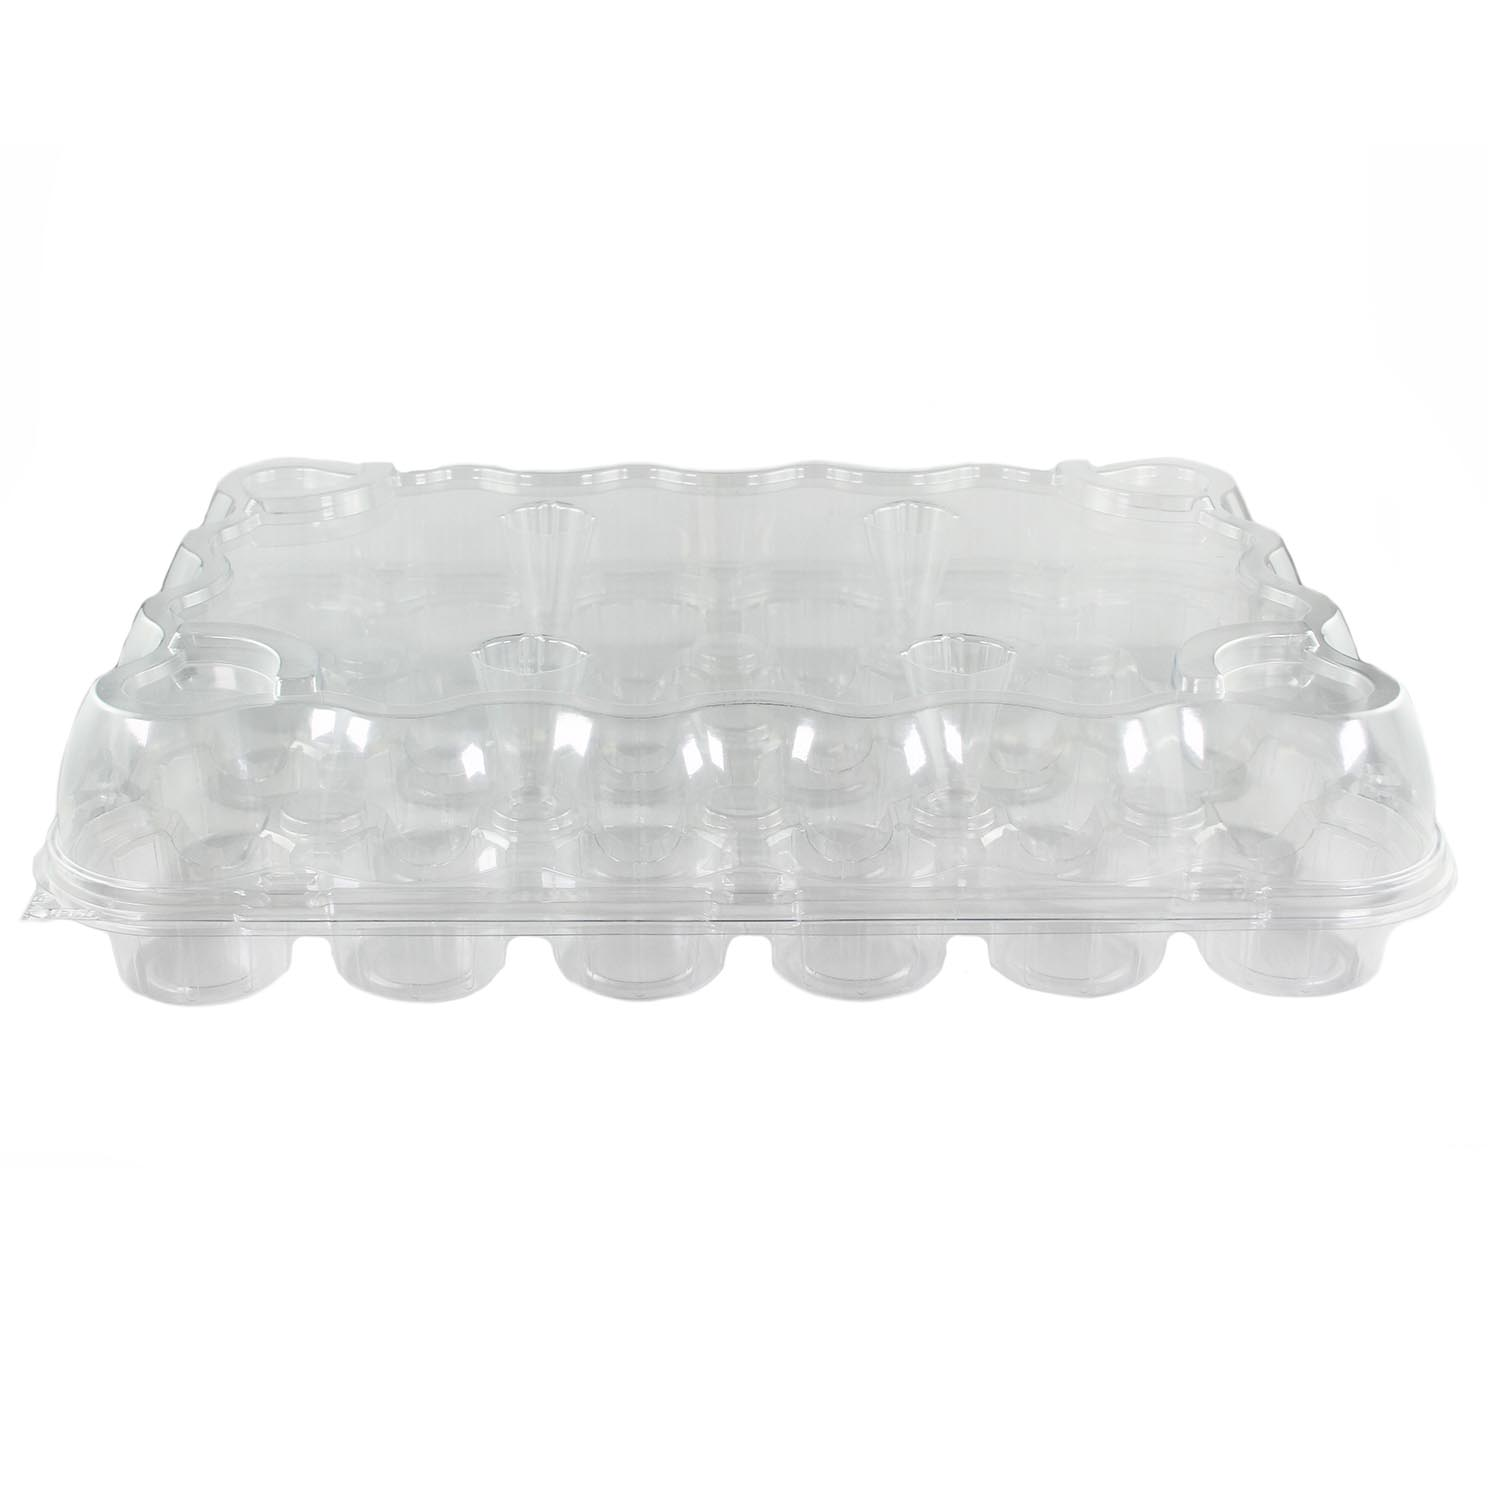 Plastic Container- Holds 24 Standard Size Cupcakes